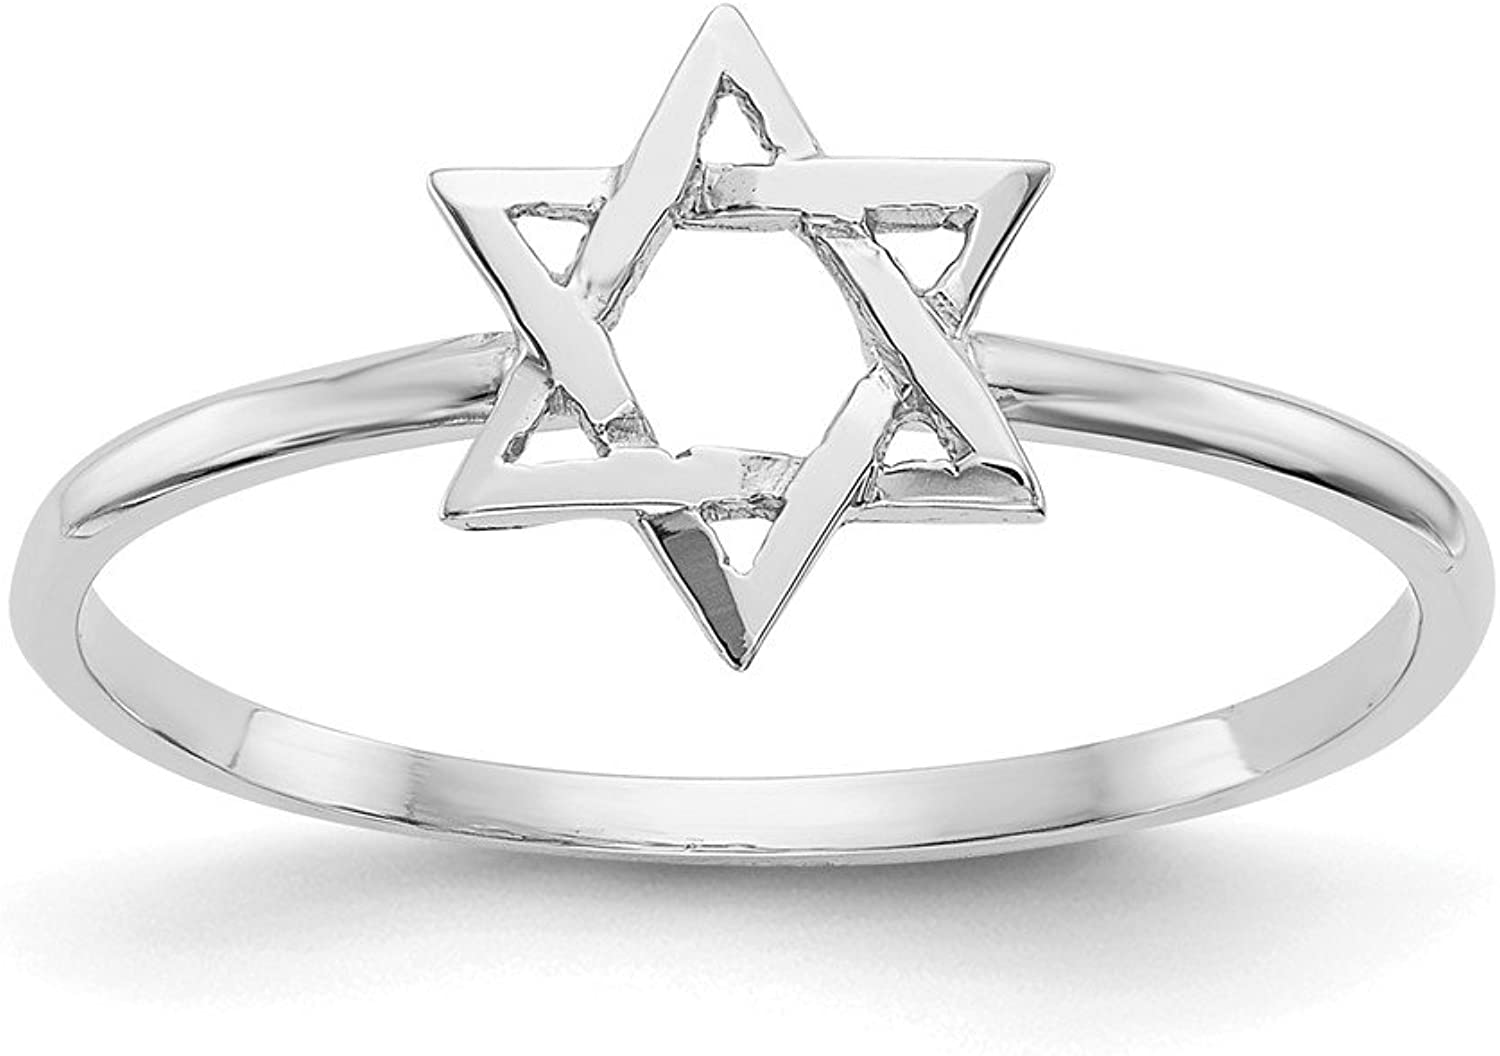 Beautiful White gold 14K 14k White gold Polished Star of David Ring